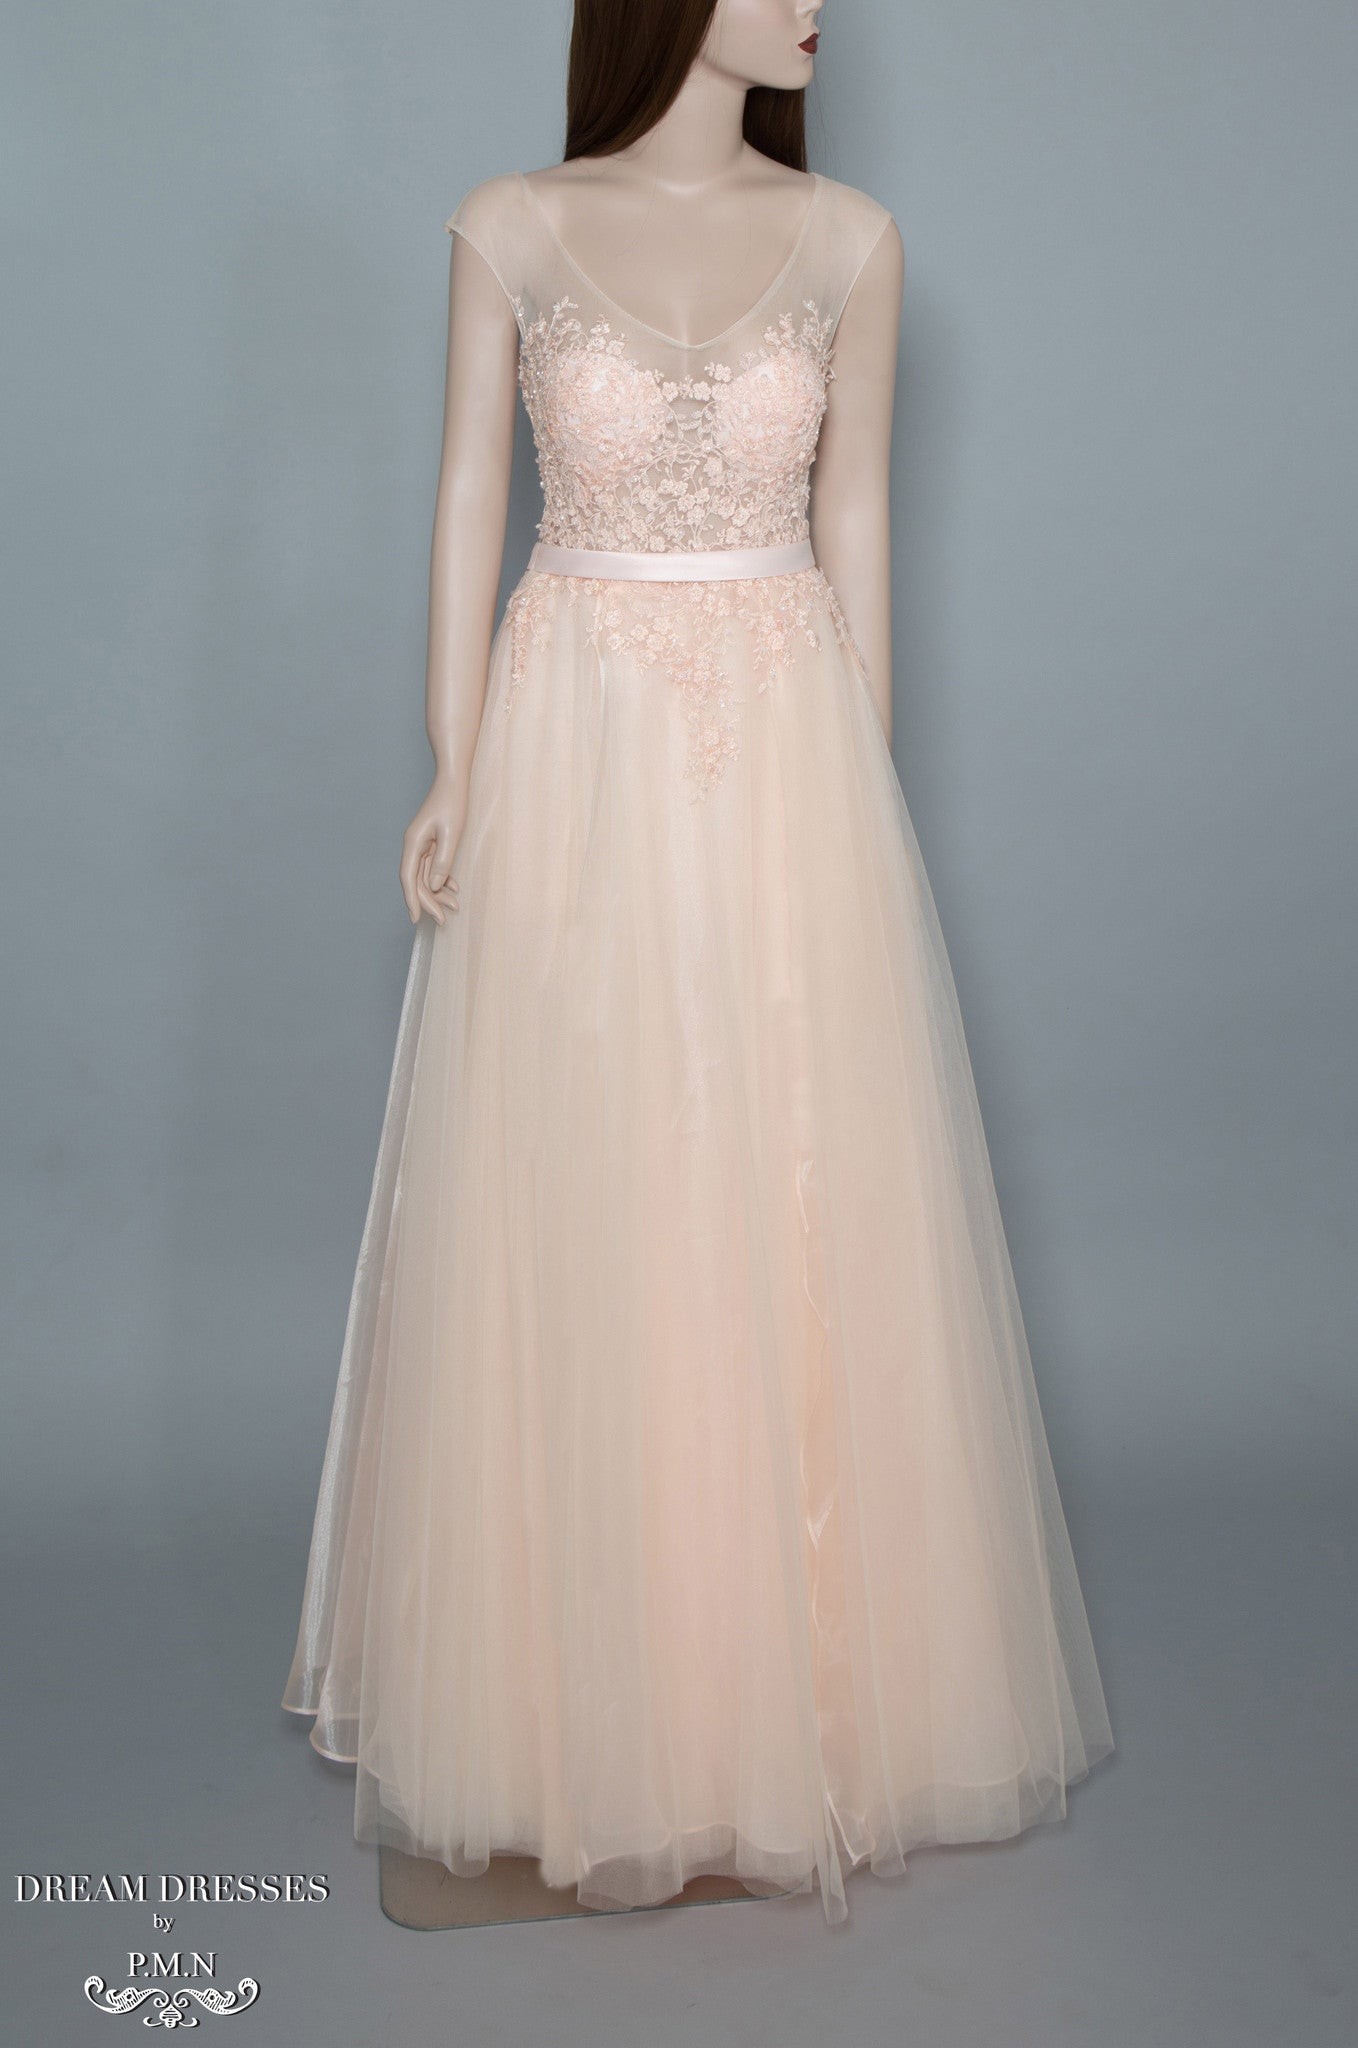 Blush Pink Tulle Gown (#Joie) - Dream Dresses by P.M.N  - 1